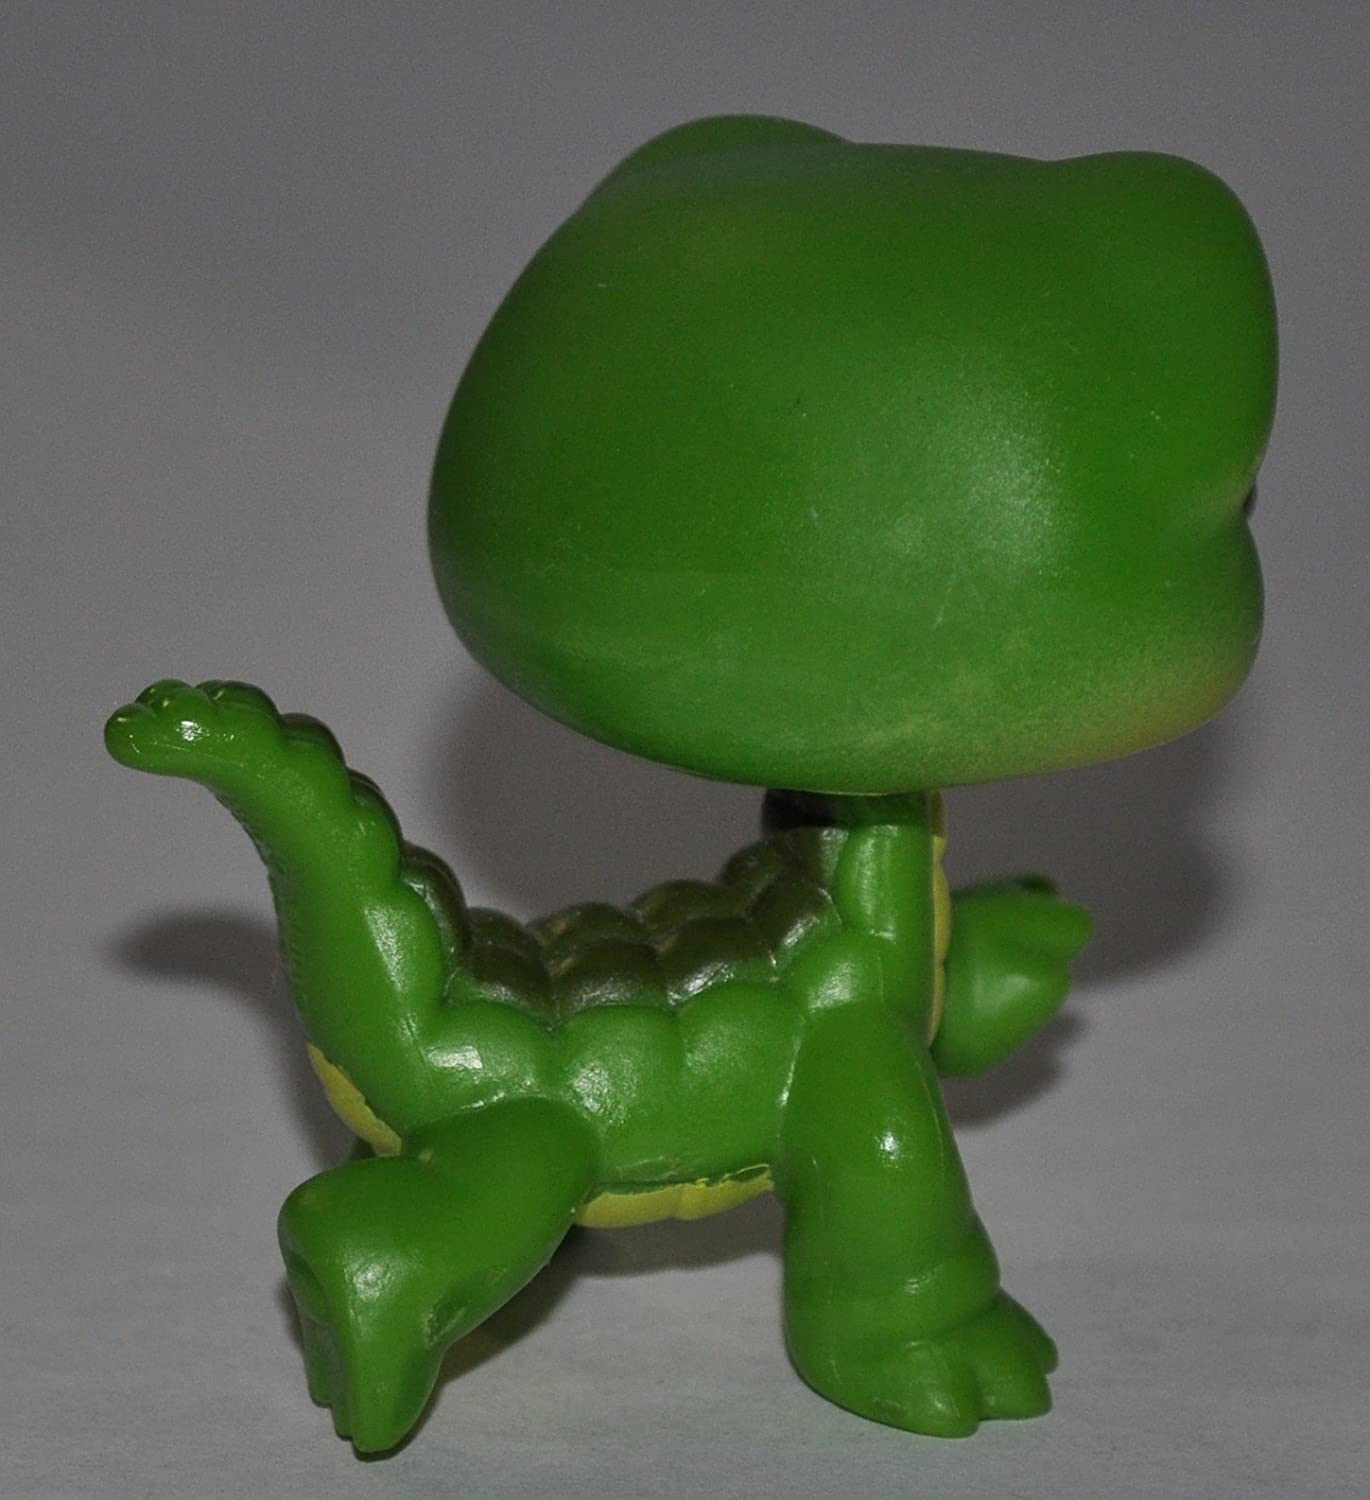 Retired Special Edition Collector Toy LPS Collectible Replacement Single Figure Crocodile #987 Green, Blue Eyes, Yellow Belly Loose OOP Out of Package /& Print - Littlest Pet Shop